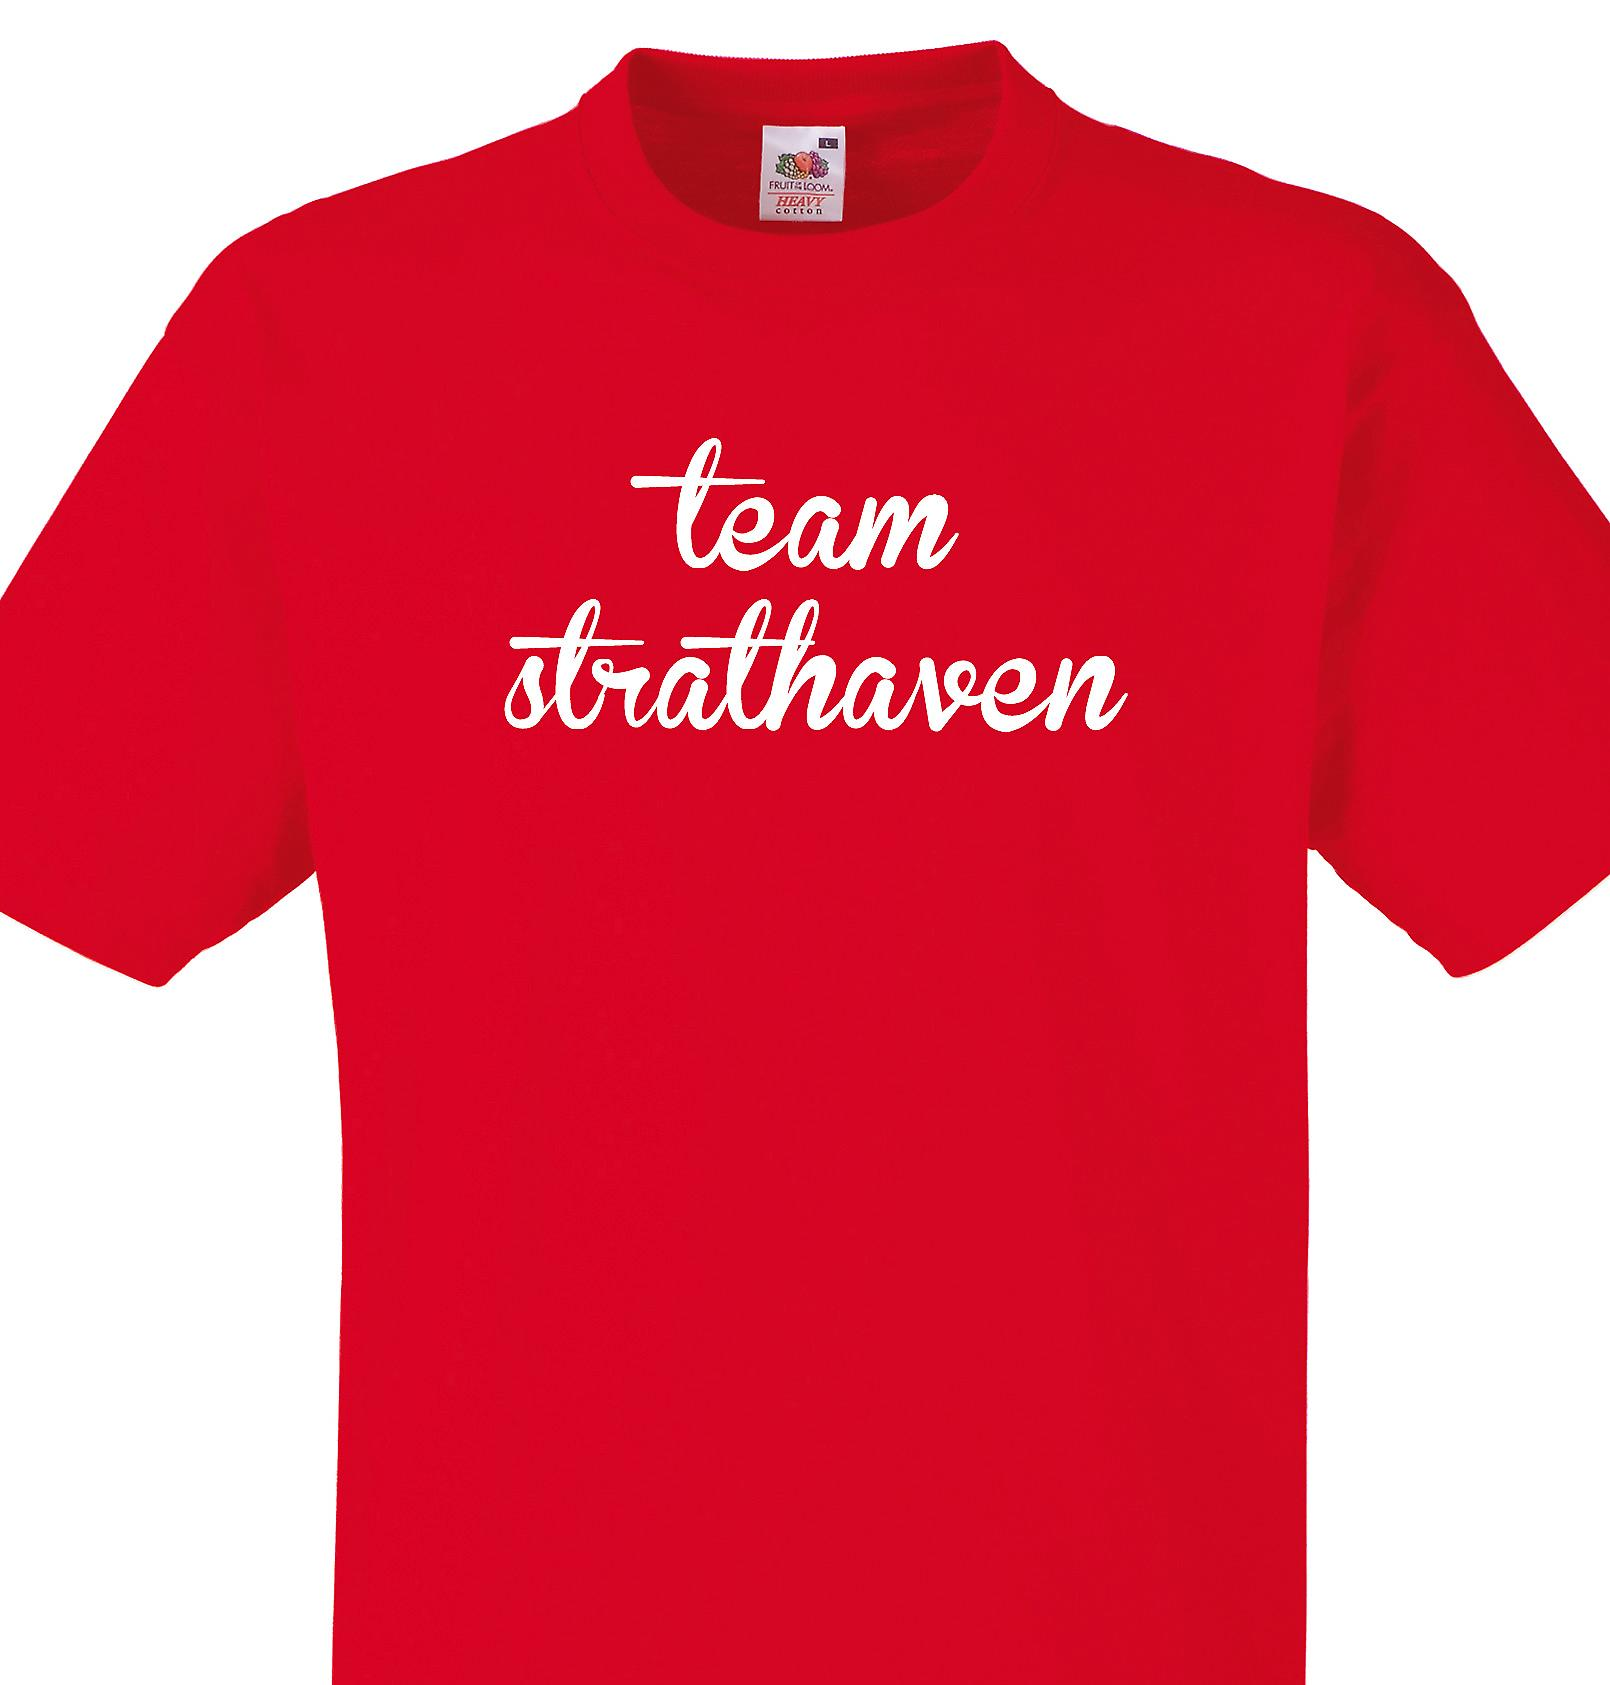 Team Strathaven Red T shirt